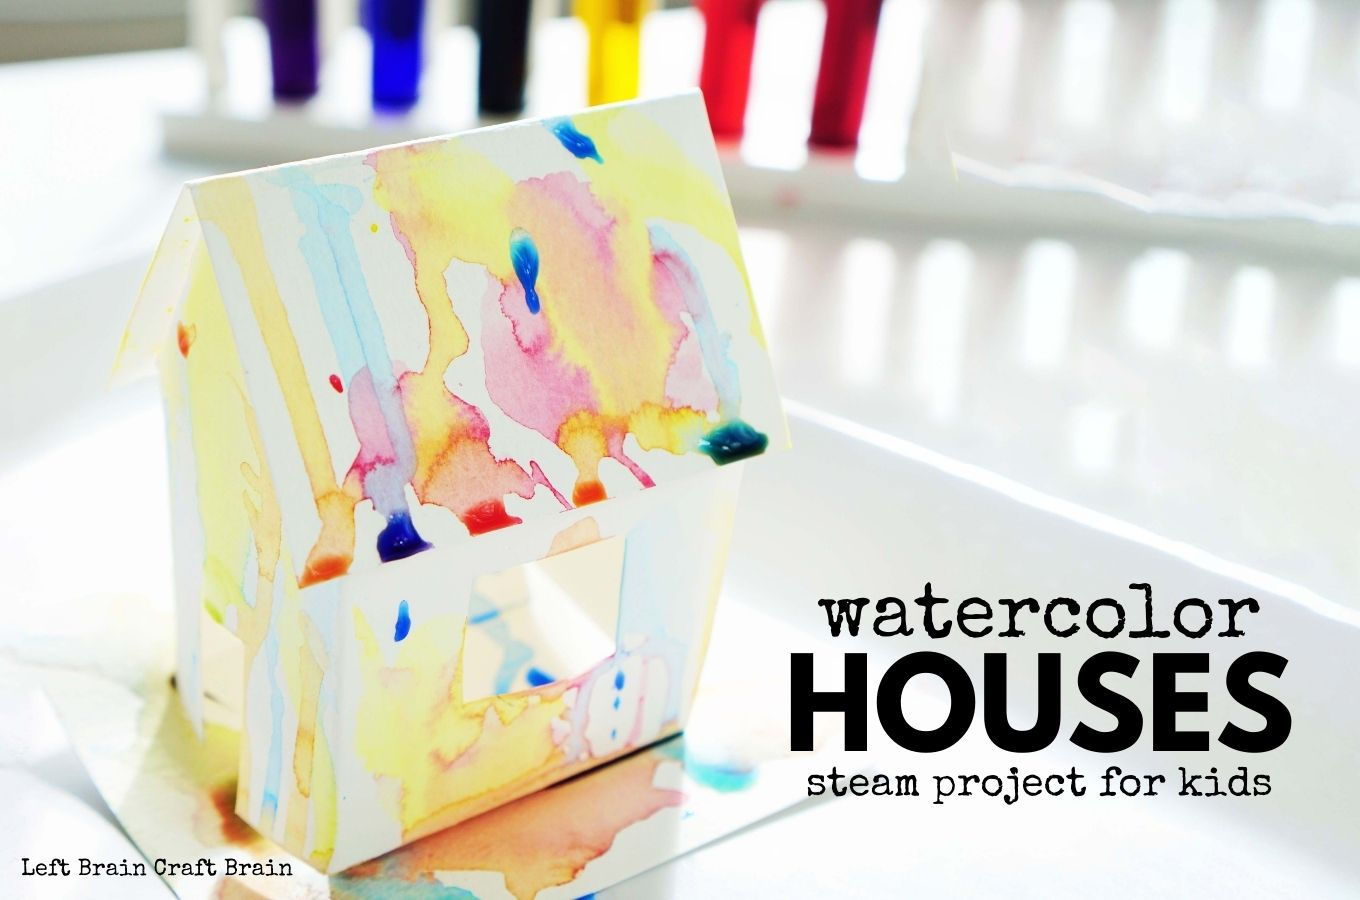 Watercolor Houses STEAM Projects for Kids 1360x900jpg